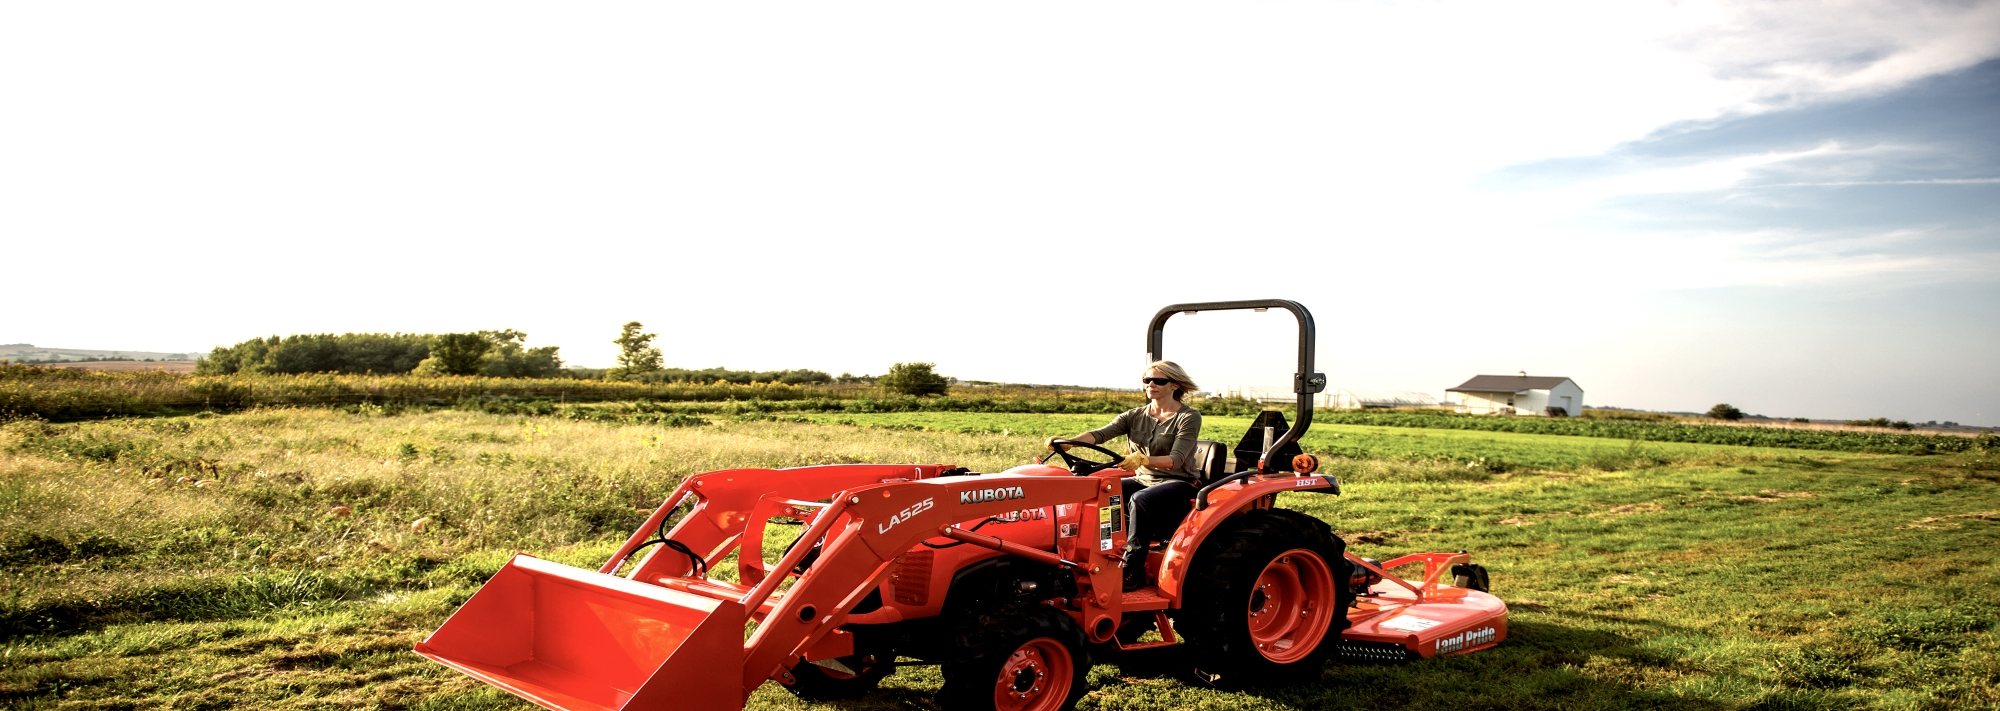 New Holland farm and construction equipment, Kubota and